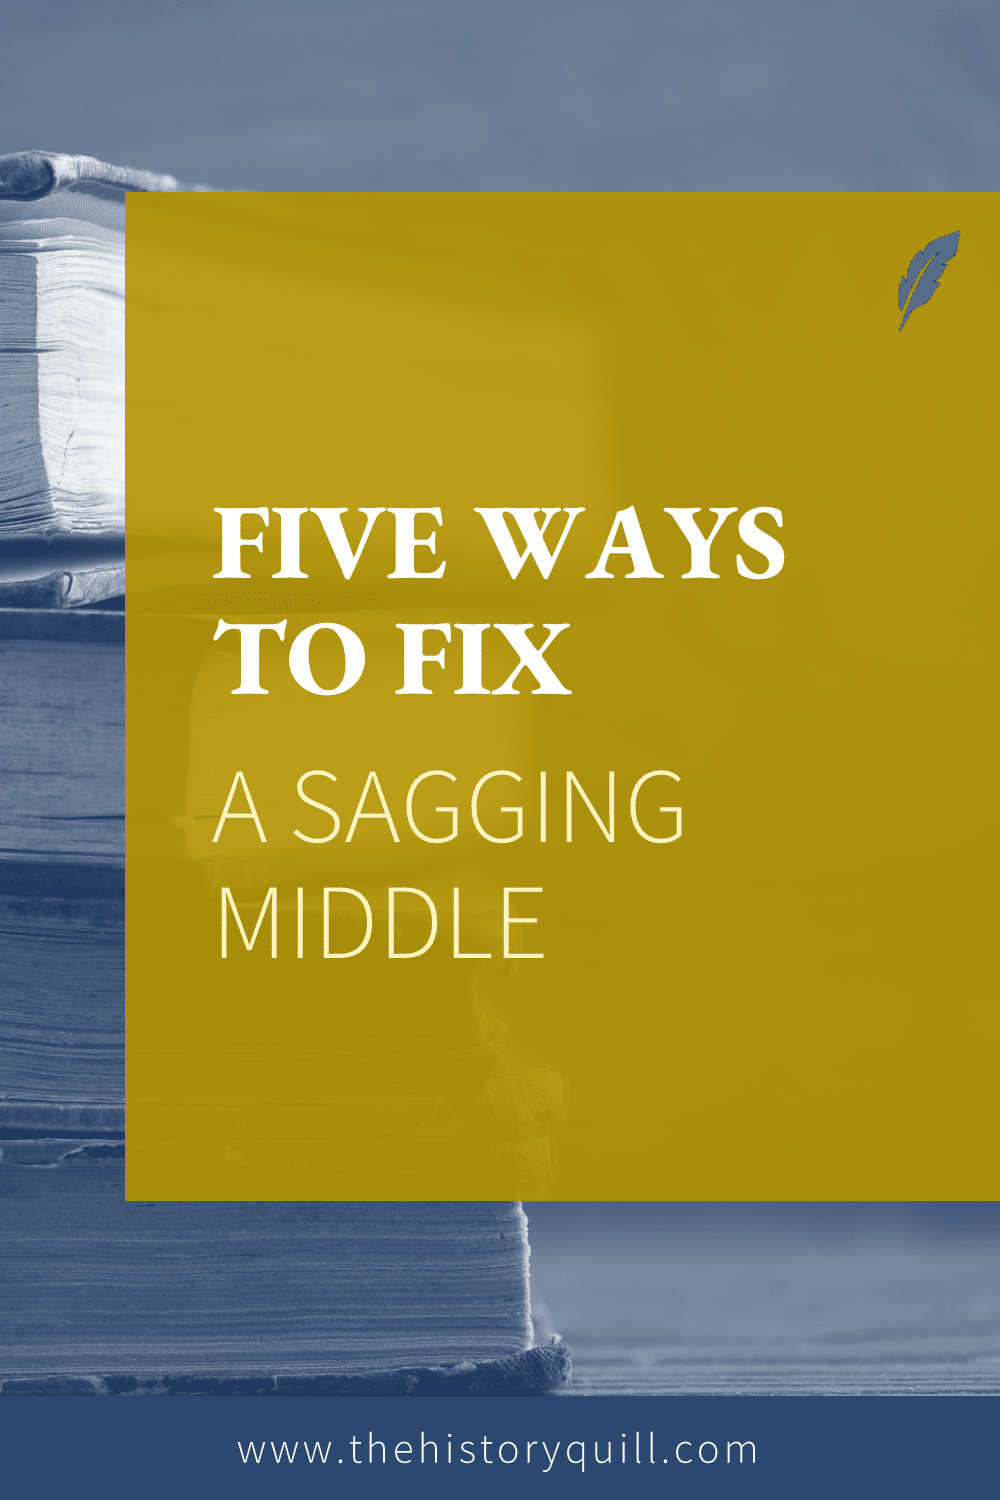 From The History Quill blog, five ways to fix a sagging middle in your historical fiction book.